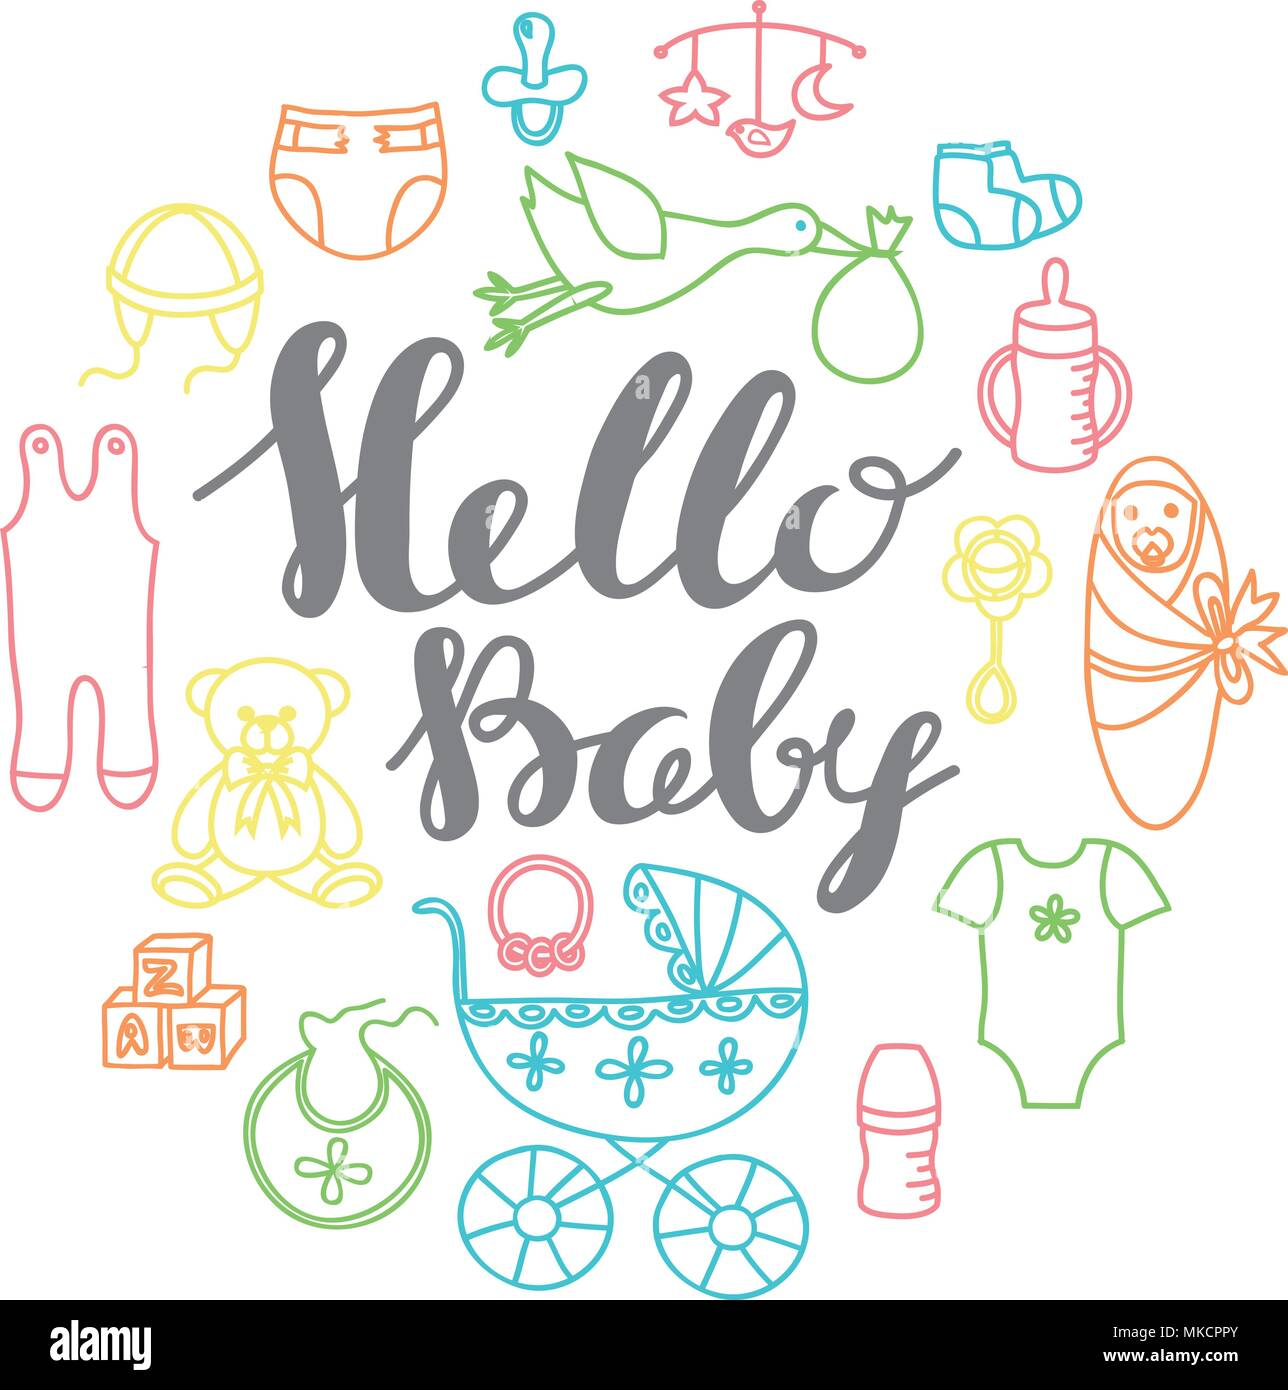 graphic about Baby Shower Card Printable named Child shower occasion greeting and invitation card